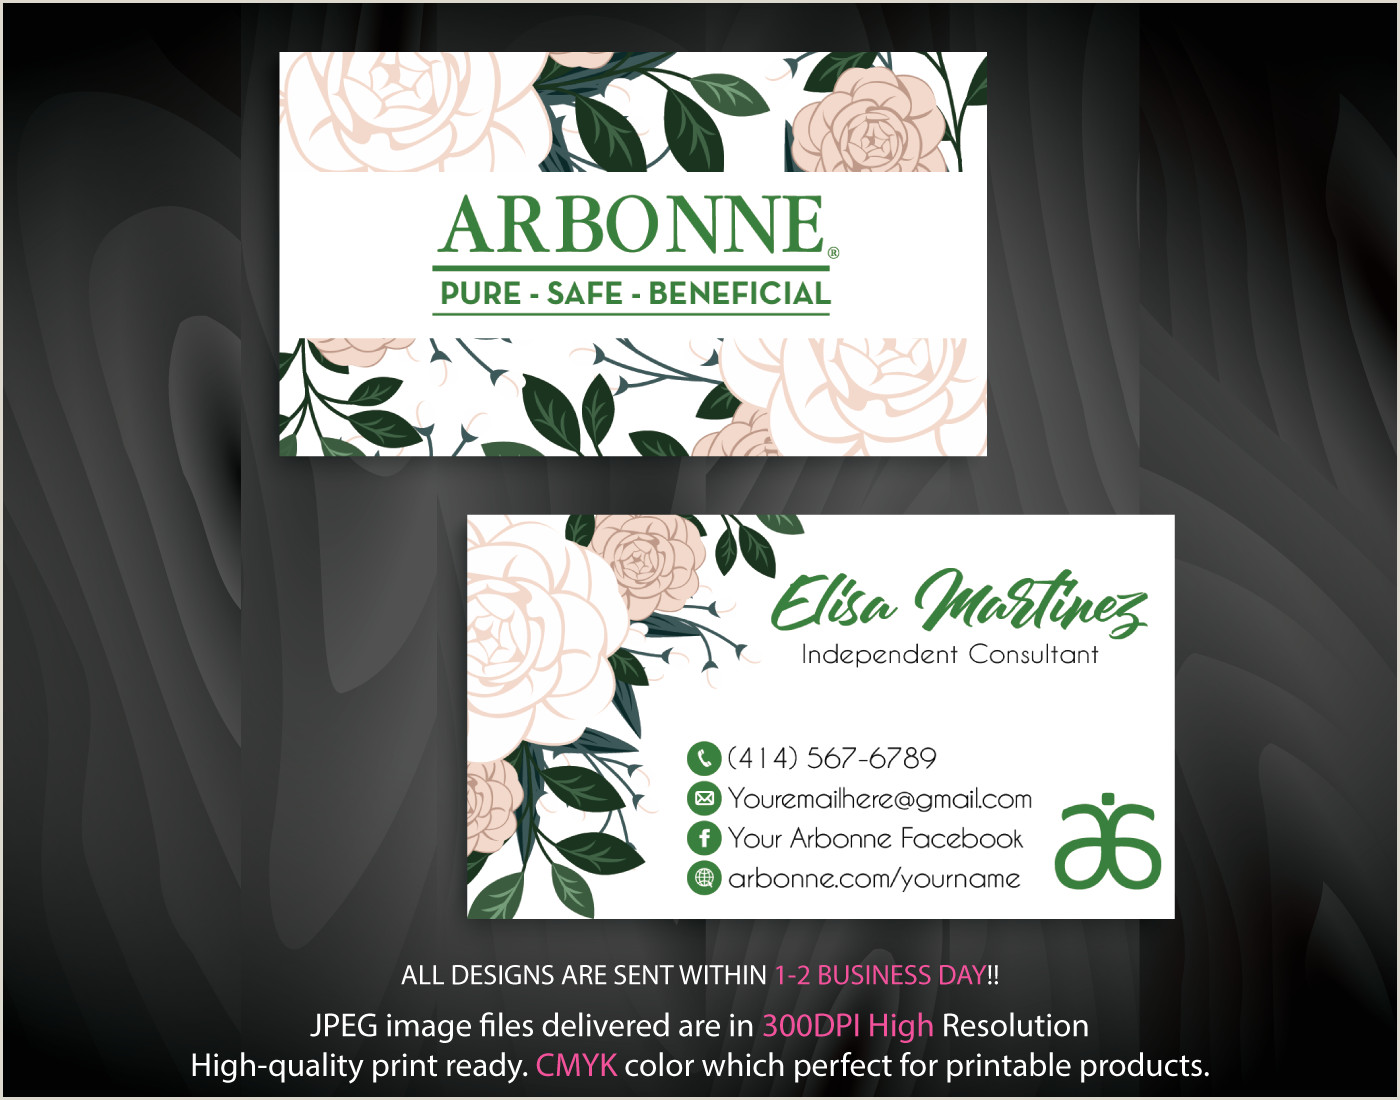 Personal Calling Cards Online Arbonne Business Cards Personalized Arbonne Cards Ab89 In